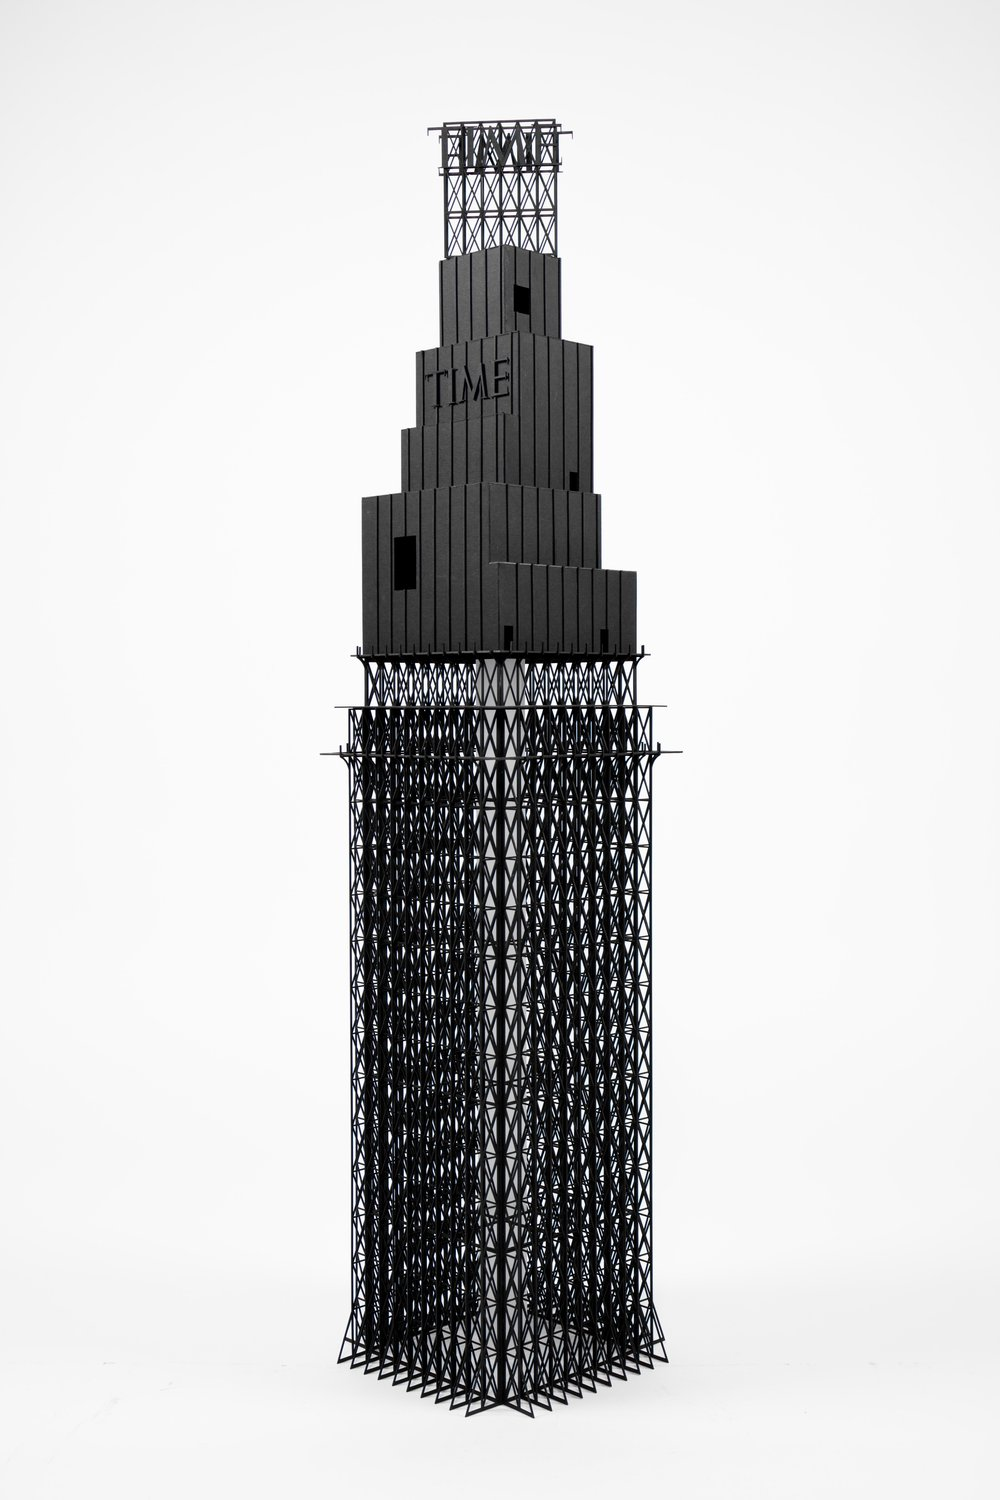 Time Tower, Infrastructures for an Overpopulated city